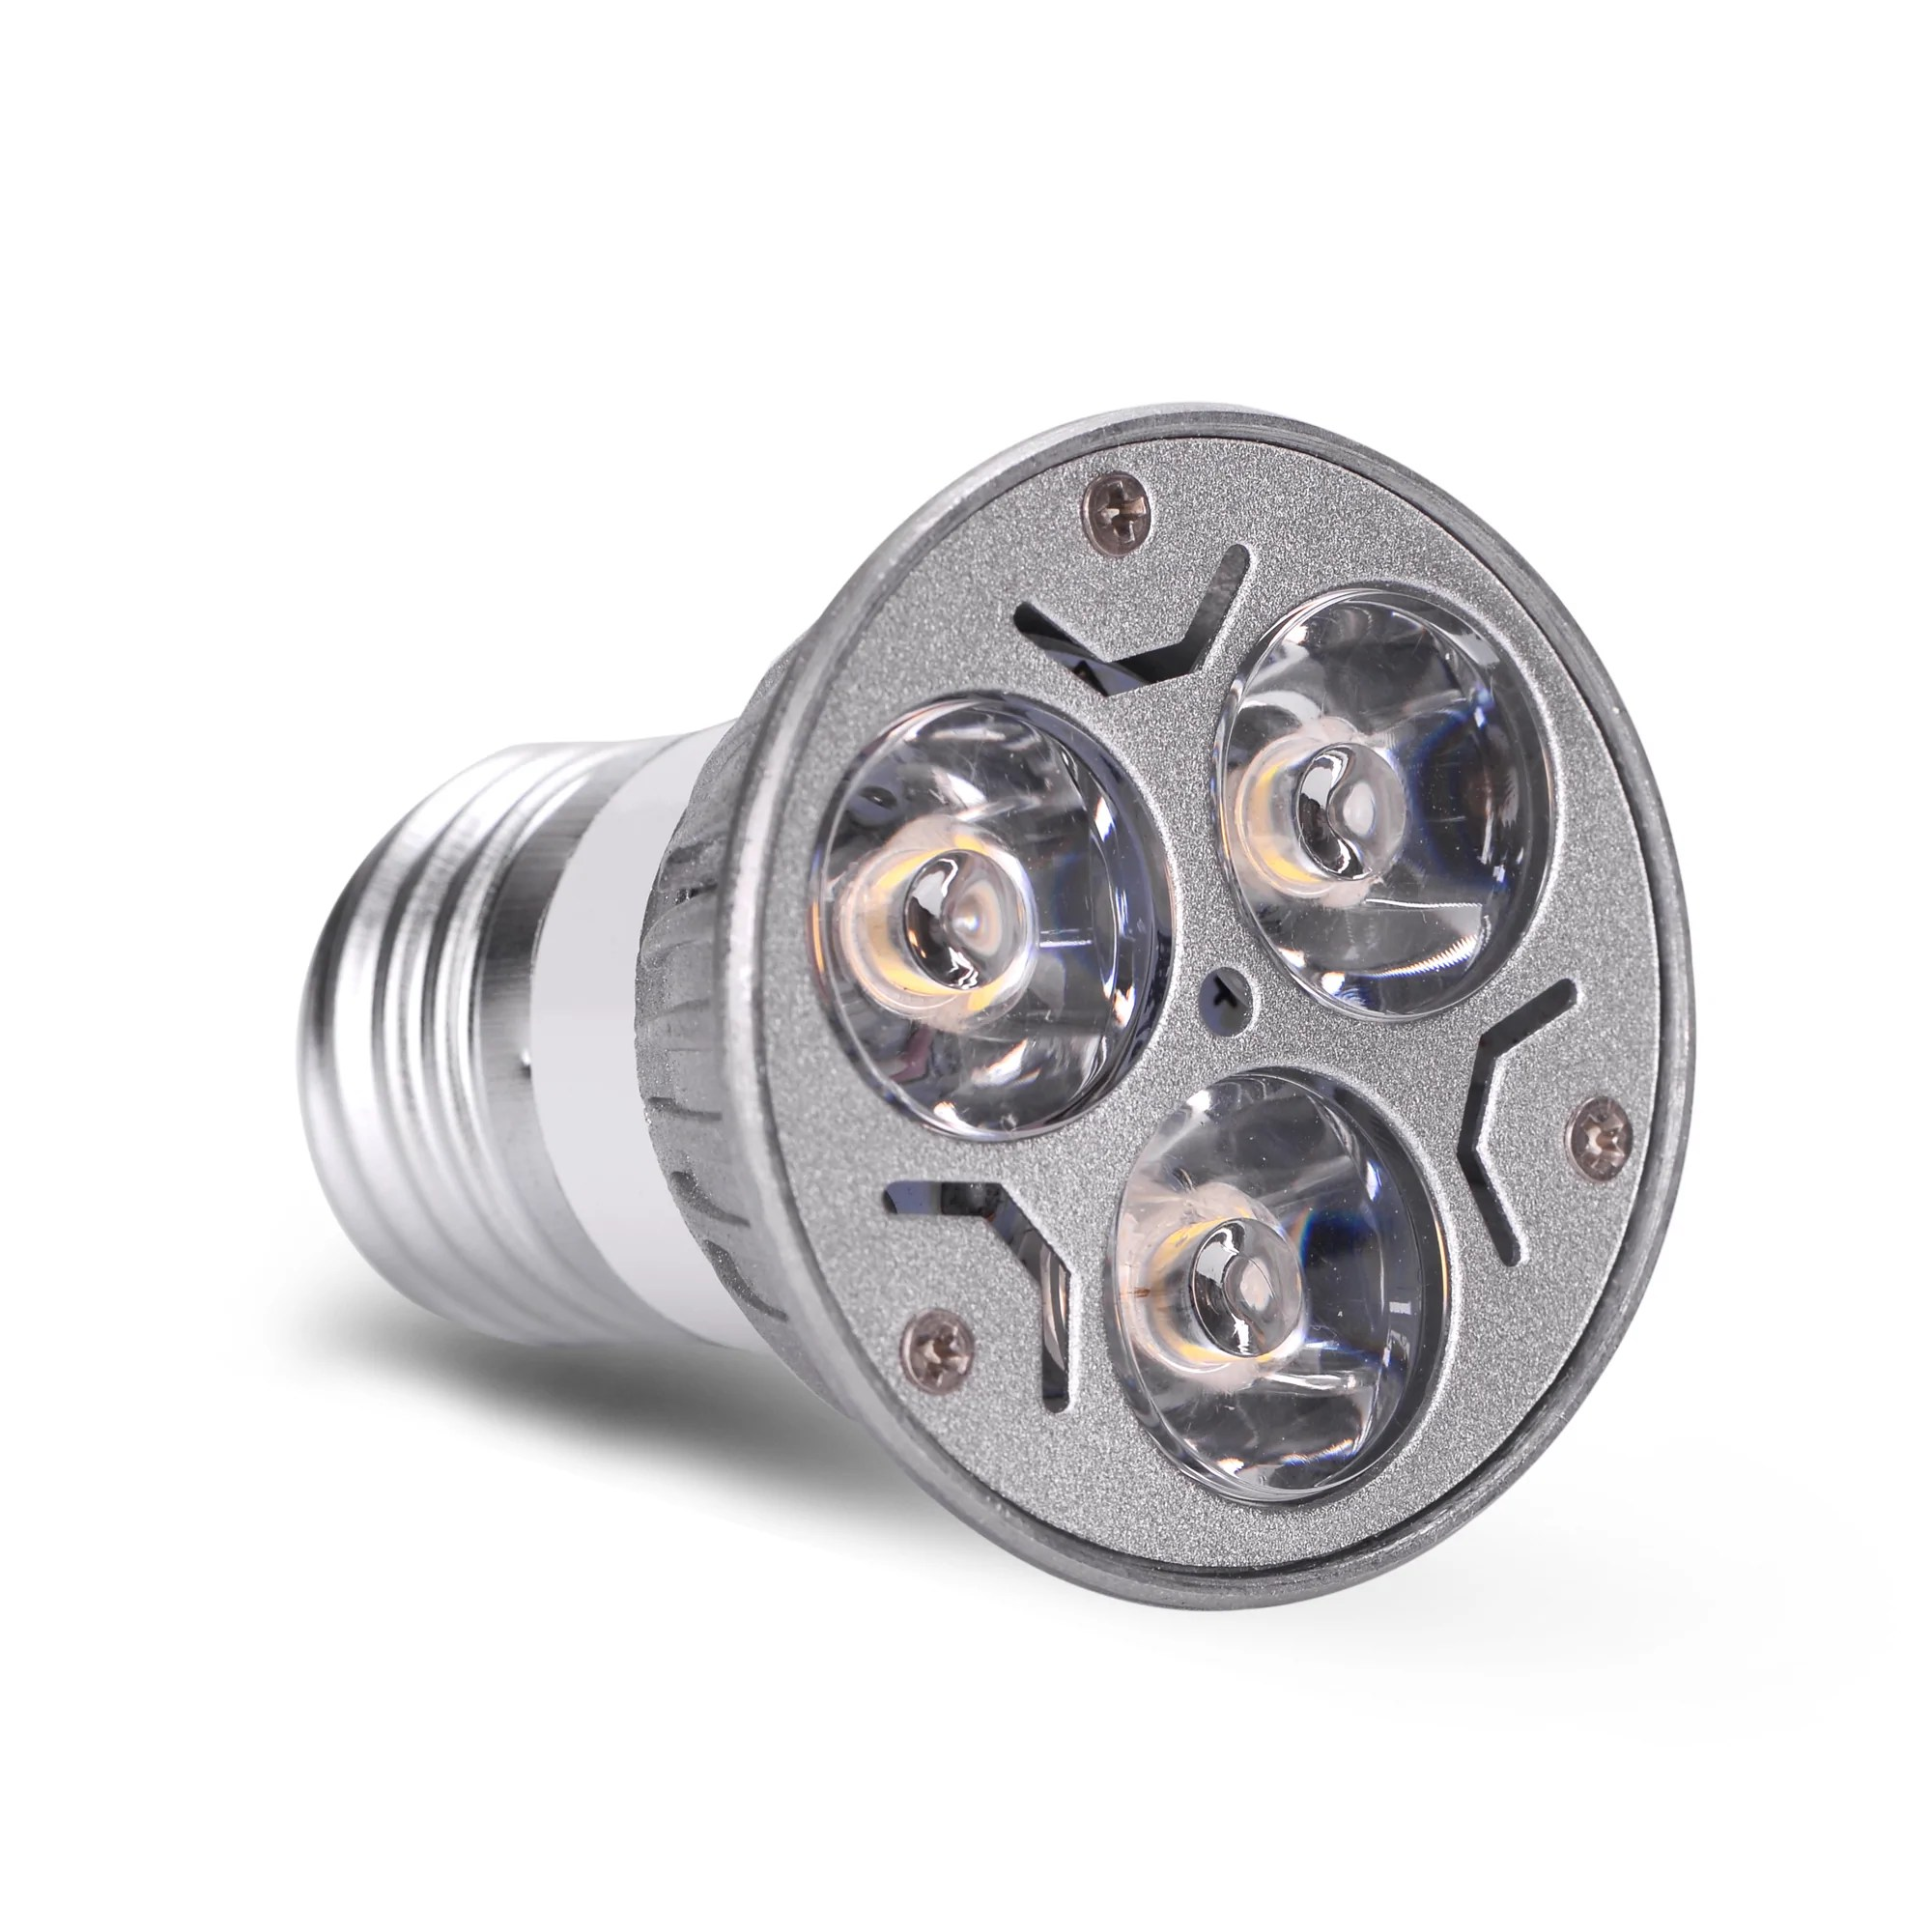 Led Spot Ac Dc 12v 12 Volt 3w 1w X 3 Led Spot Light Bulb E26 E27 Par16 Screw Socket Lamp